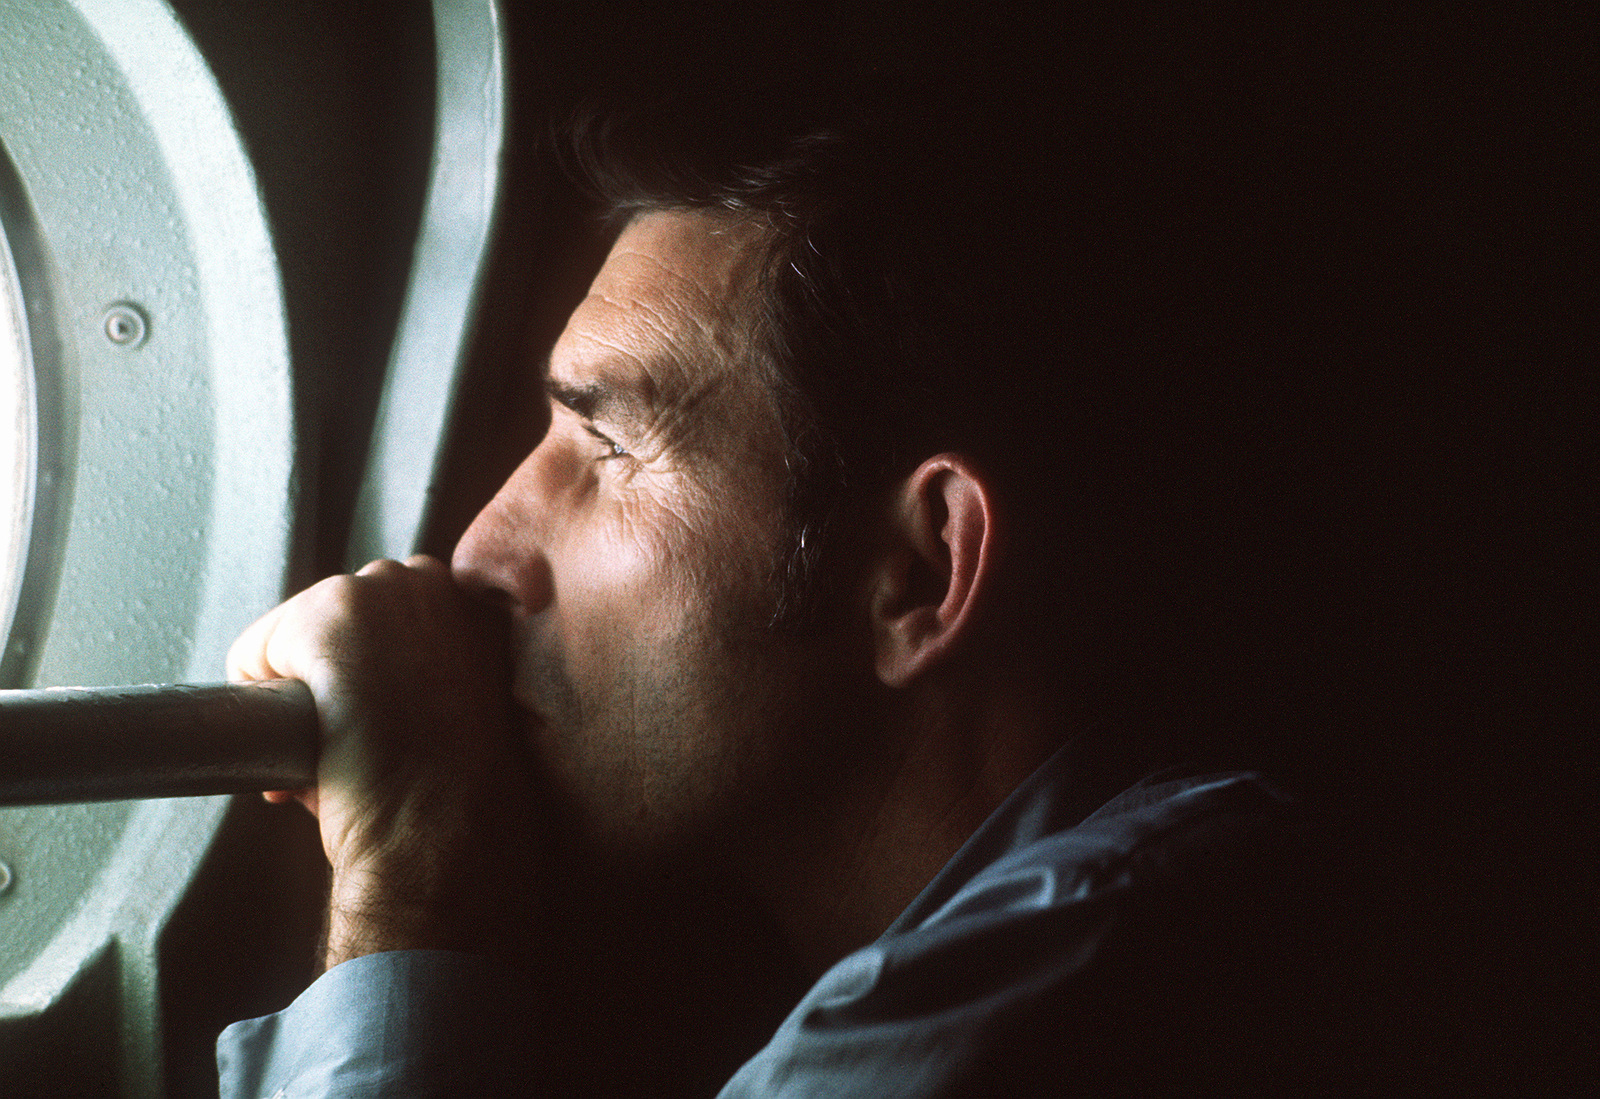 A returnee looks through the window aboard a C-141 Starlifter aircraft. The aircraft is being used to evacuate prisoners of war to Clark Air Base, Republic of the Philippines